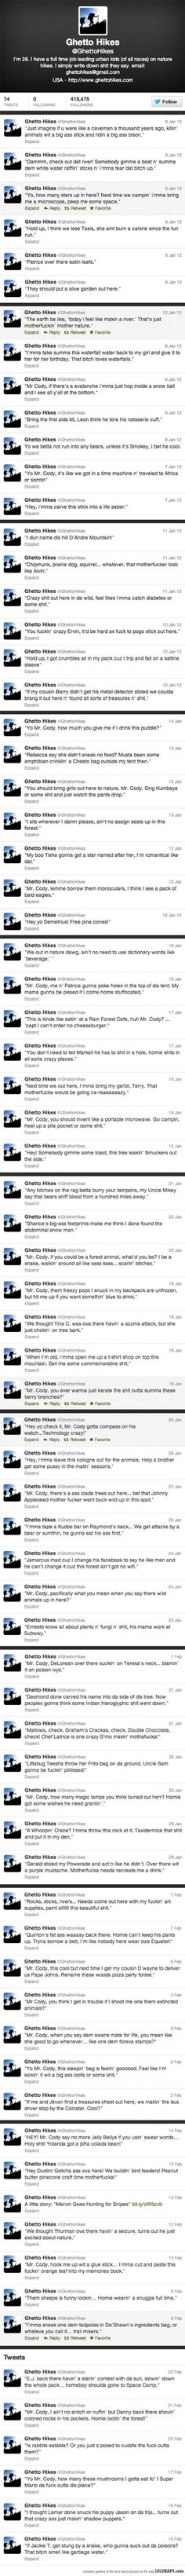 Ghetto hikes-a guy who takes inner city kids on hikes and simply tweets exactly what they say. http://ibeebz.com